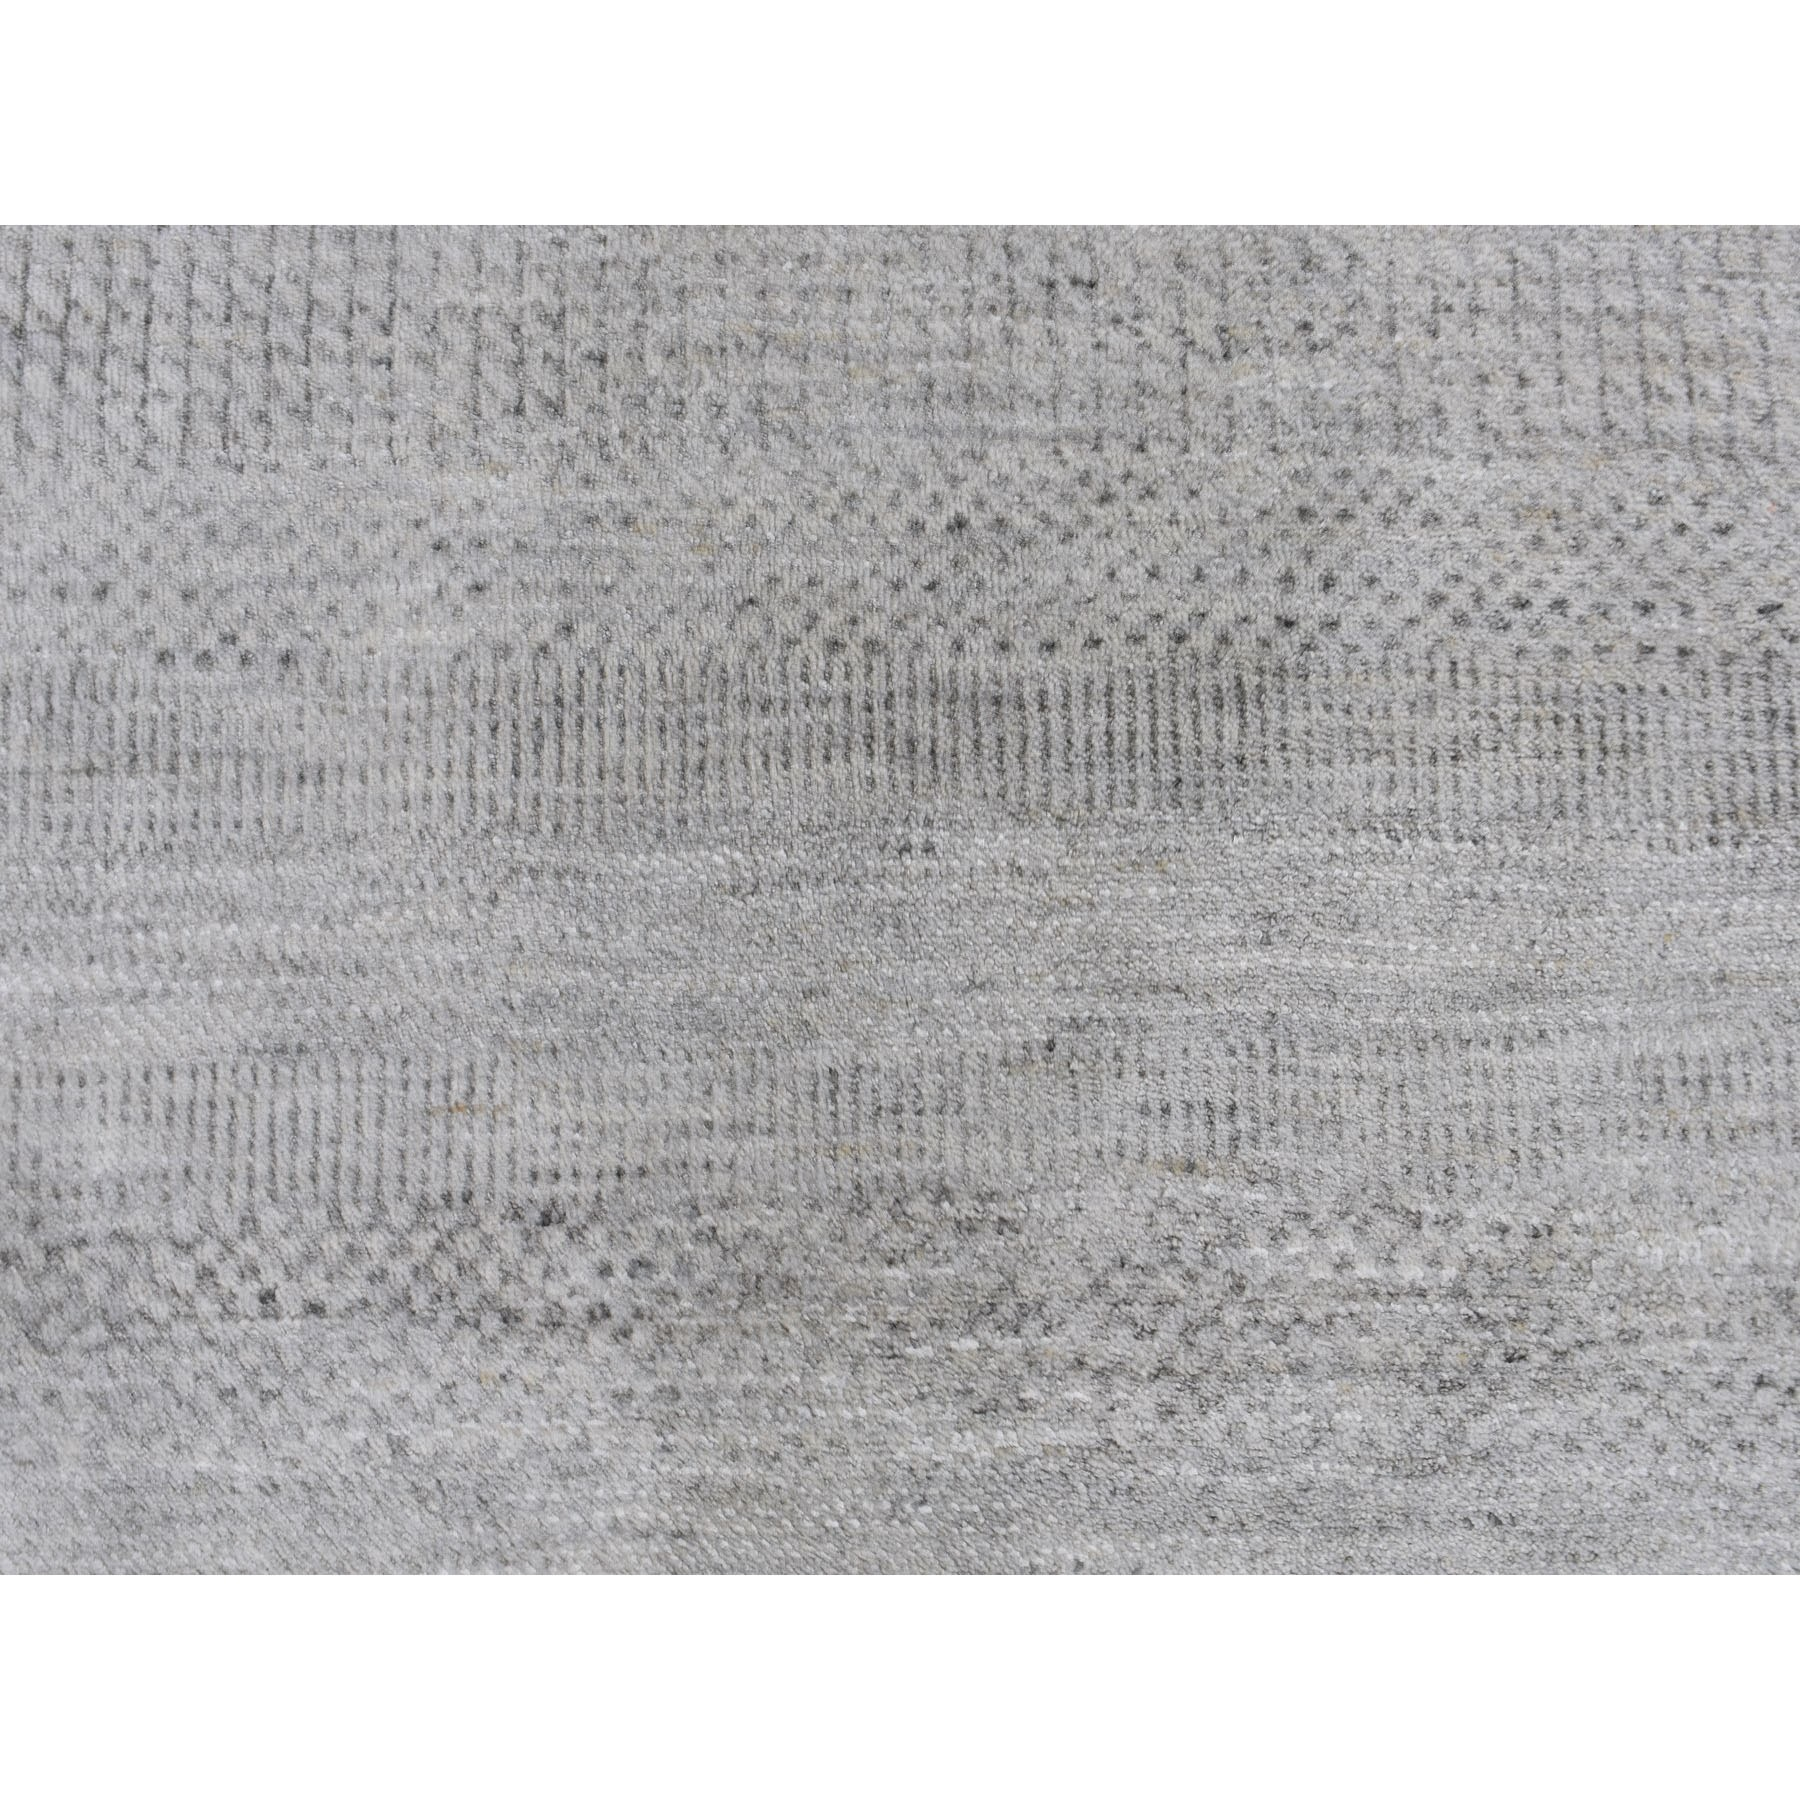 12-1 x15-4  Gray Grass Design Wool And Silk Hand Knotted Oriental Rug